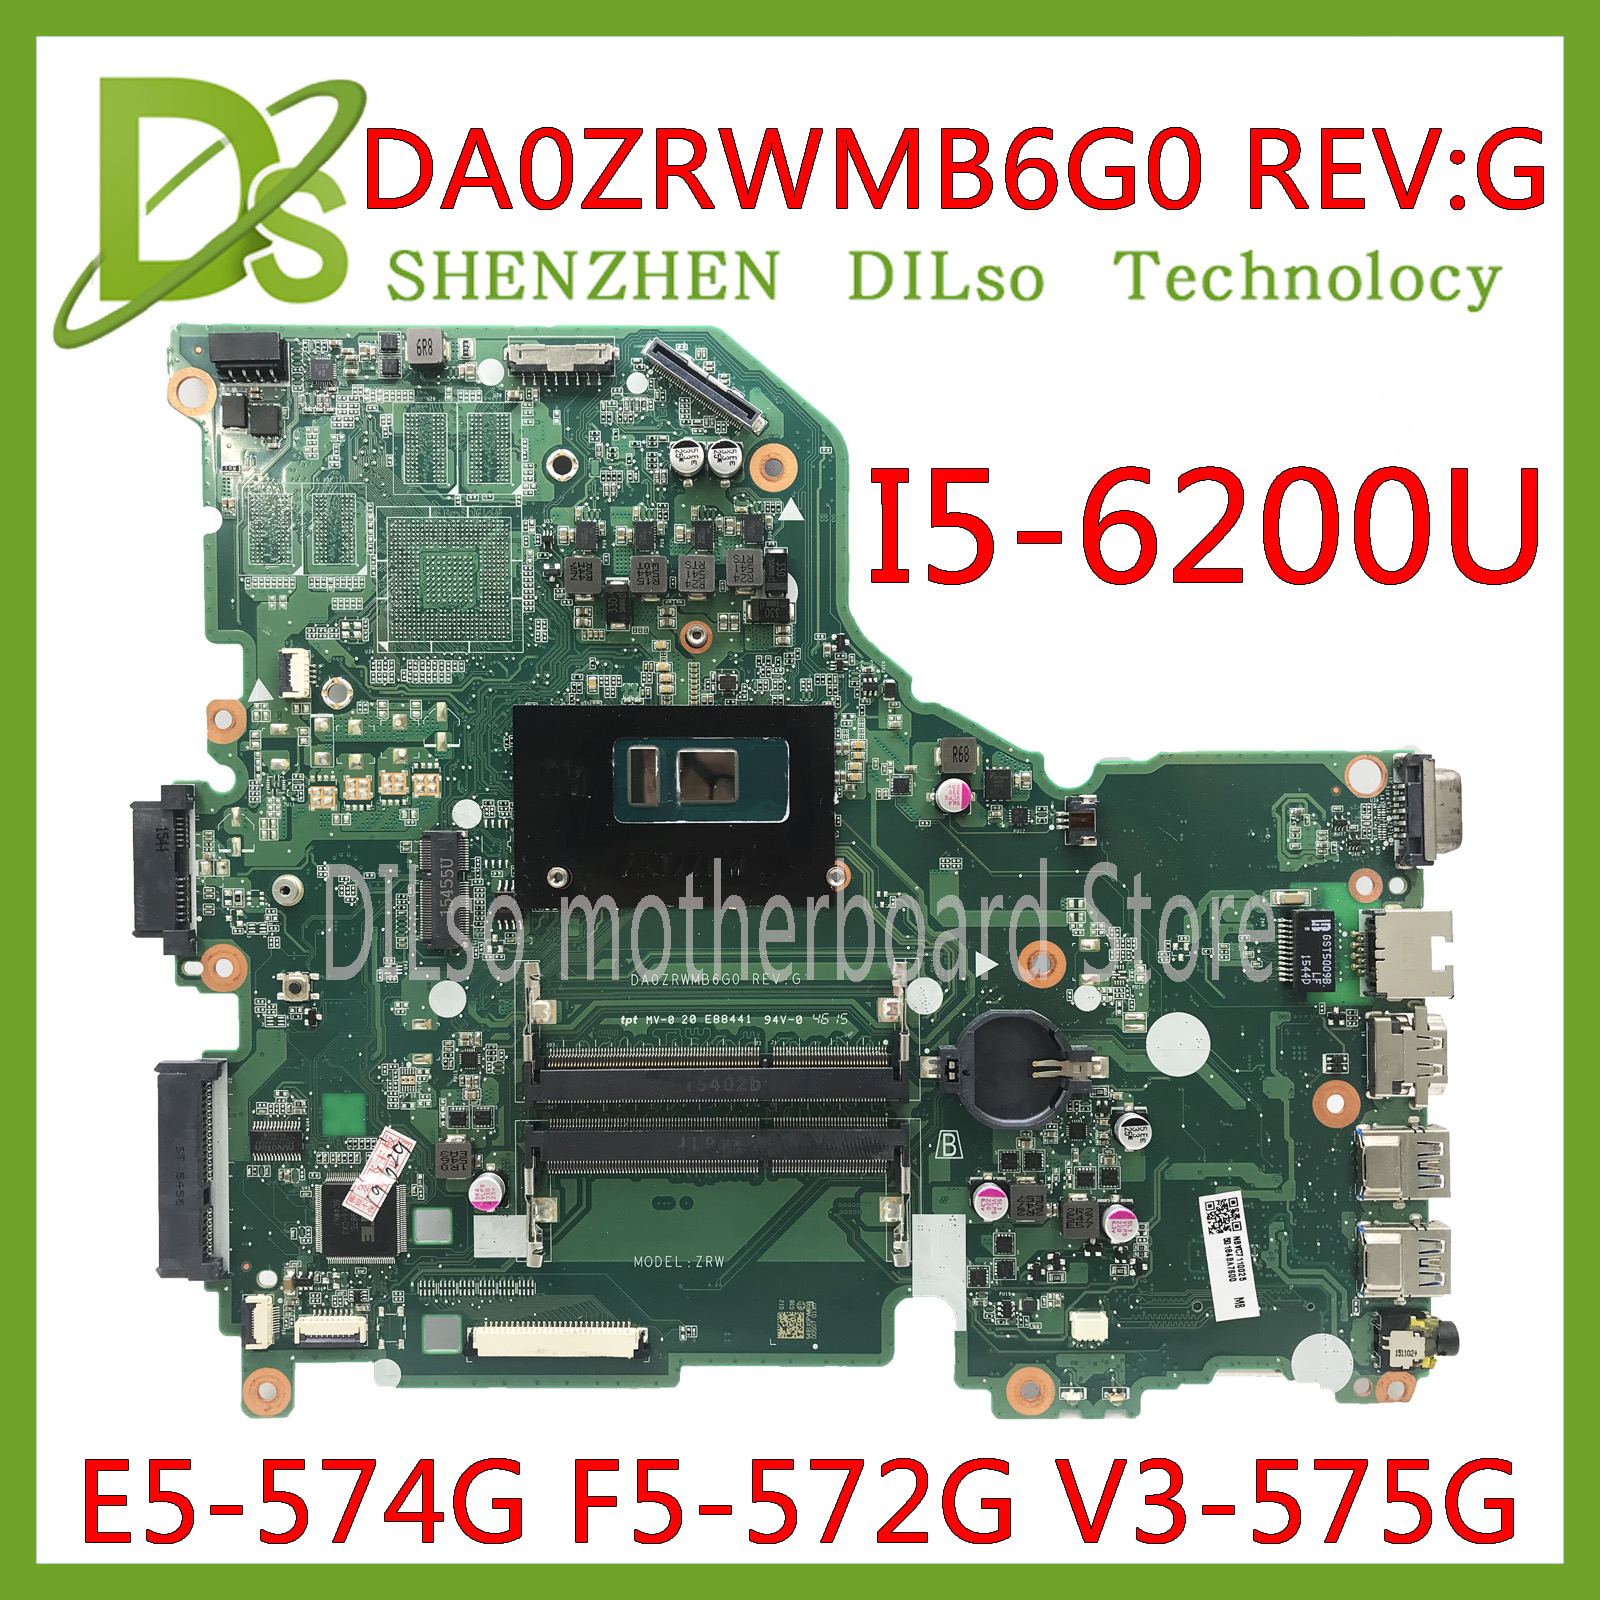 KEFU E5-574G Mainboard For Acer Aspire E5-574 E5-574G F5-572 V3-575 V3-575G Motherboard I5-6200U CPU DA0ZRWMB6G0 Test Original